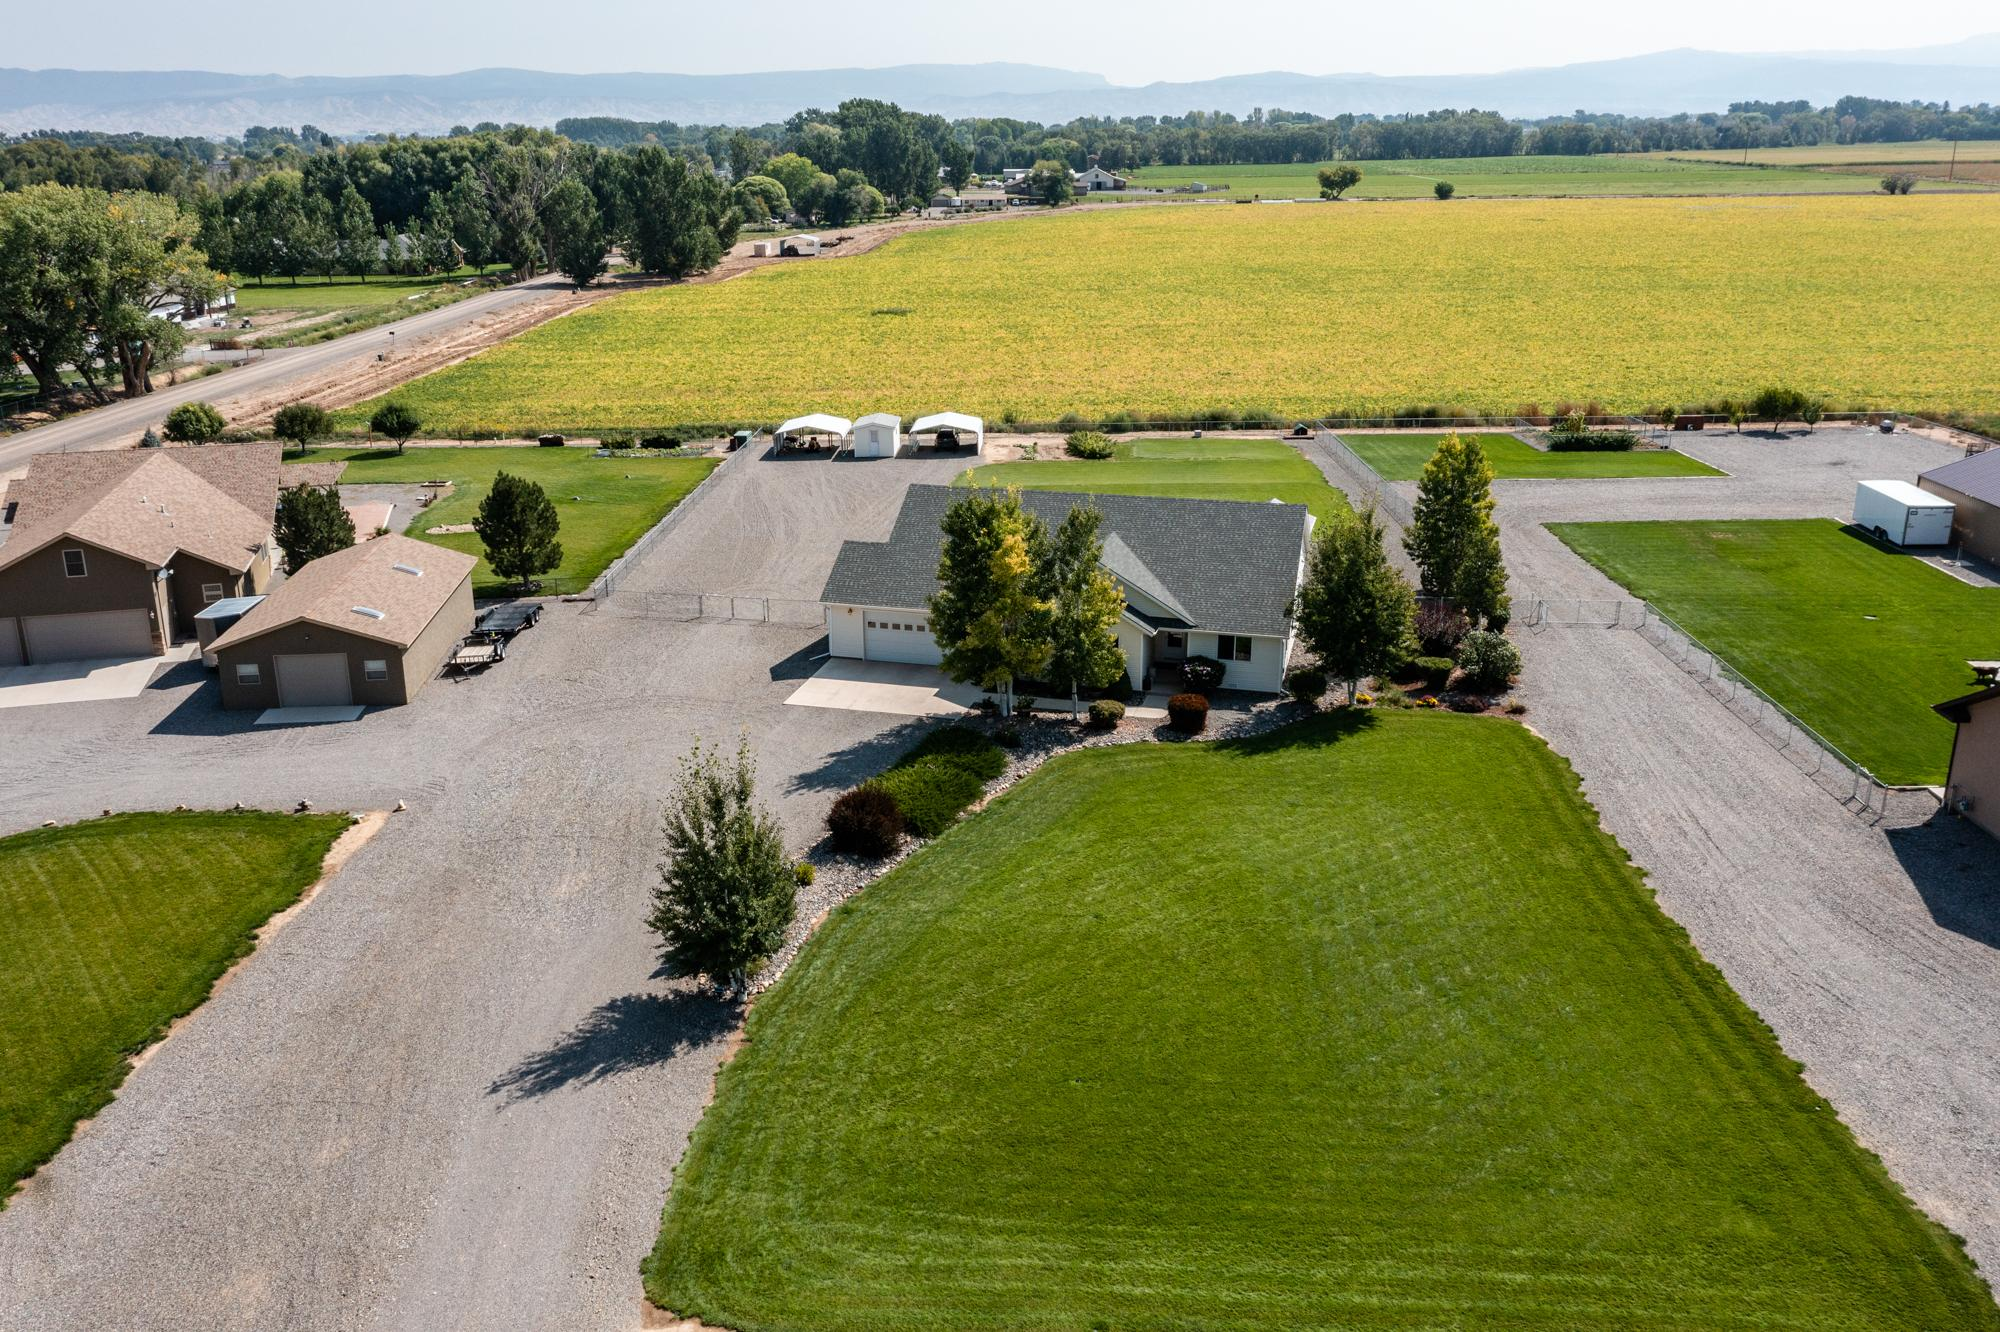 Aerial View of Front of Property - 15552 6120 Rd Montrose, CO 81403 - Atha Team Country Real Estate